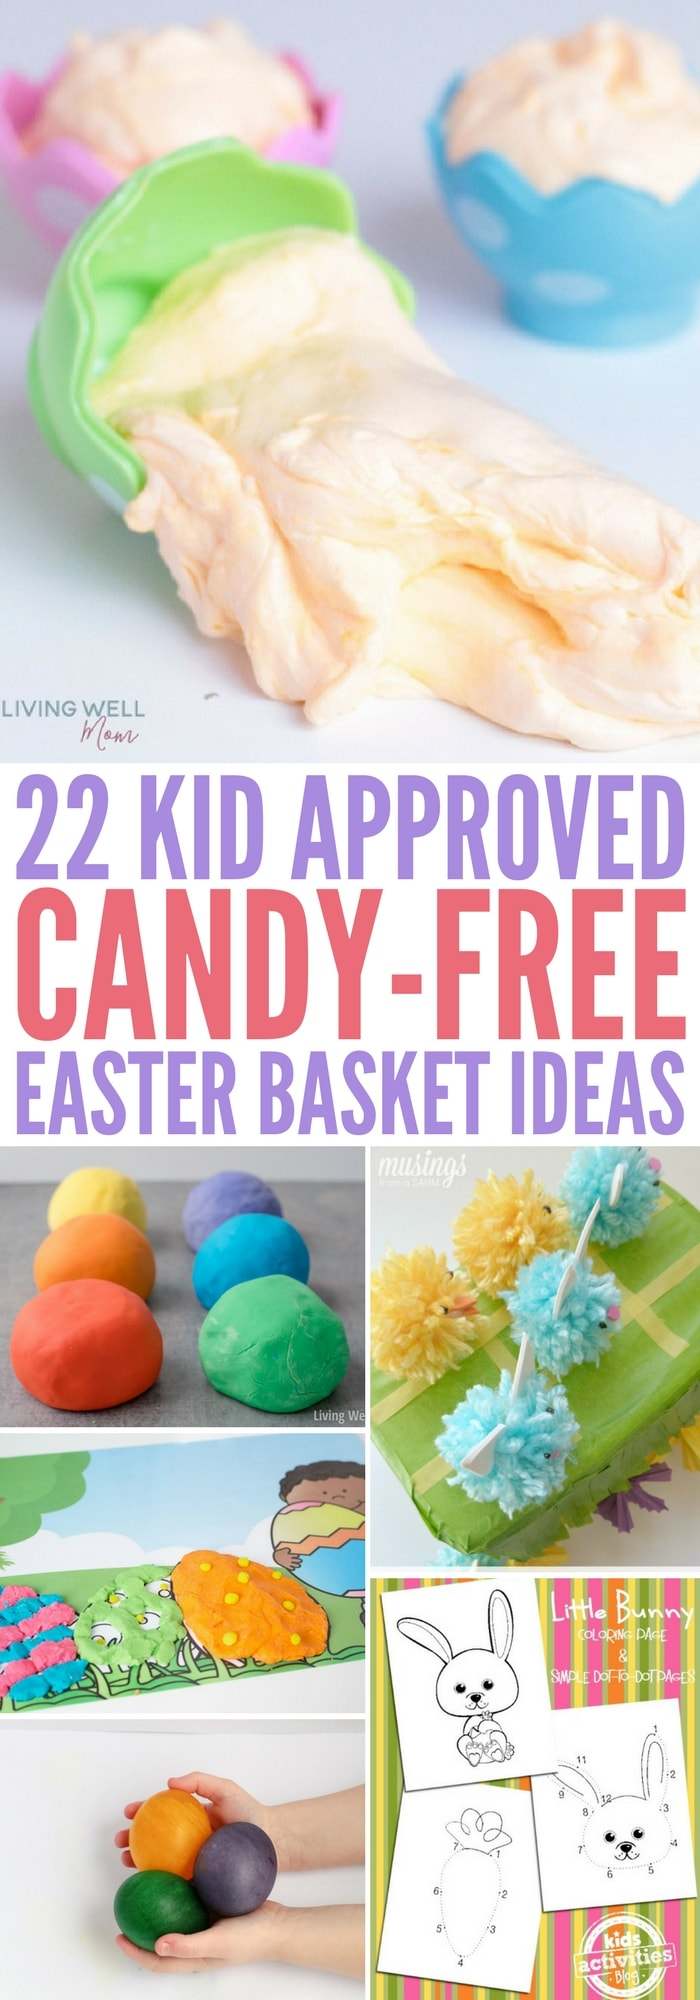 25 kid approved easter basket fillers that arent candy need some easter basket ideas these candy free easter basket fillers were picked out negle Image collections